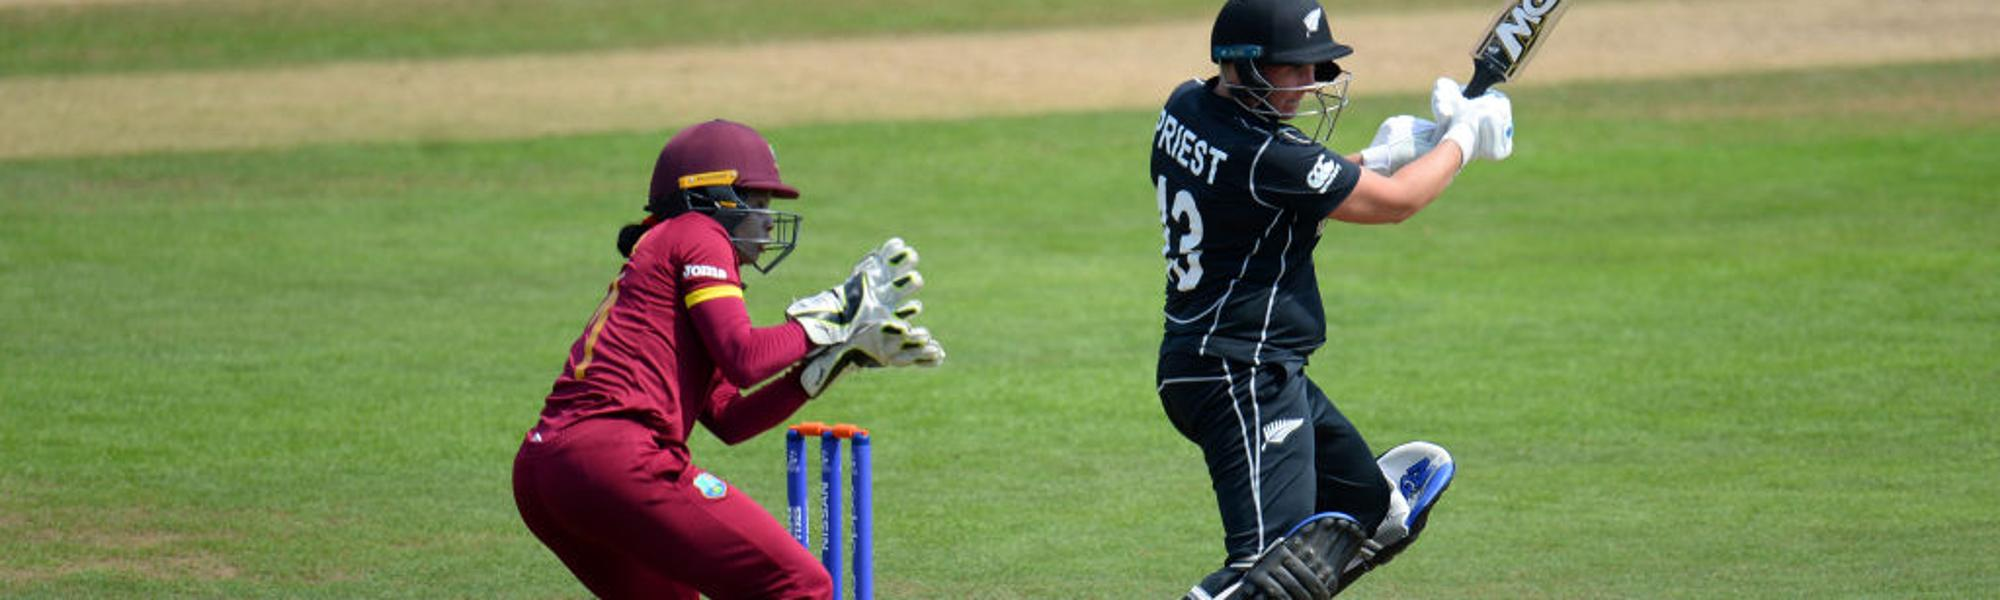 Rachel Priest bats on her way to a 55-ball 90.